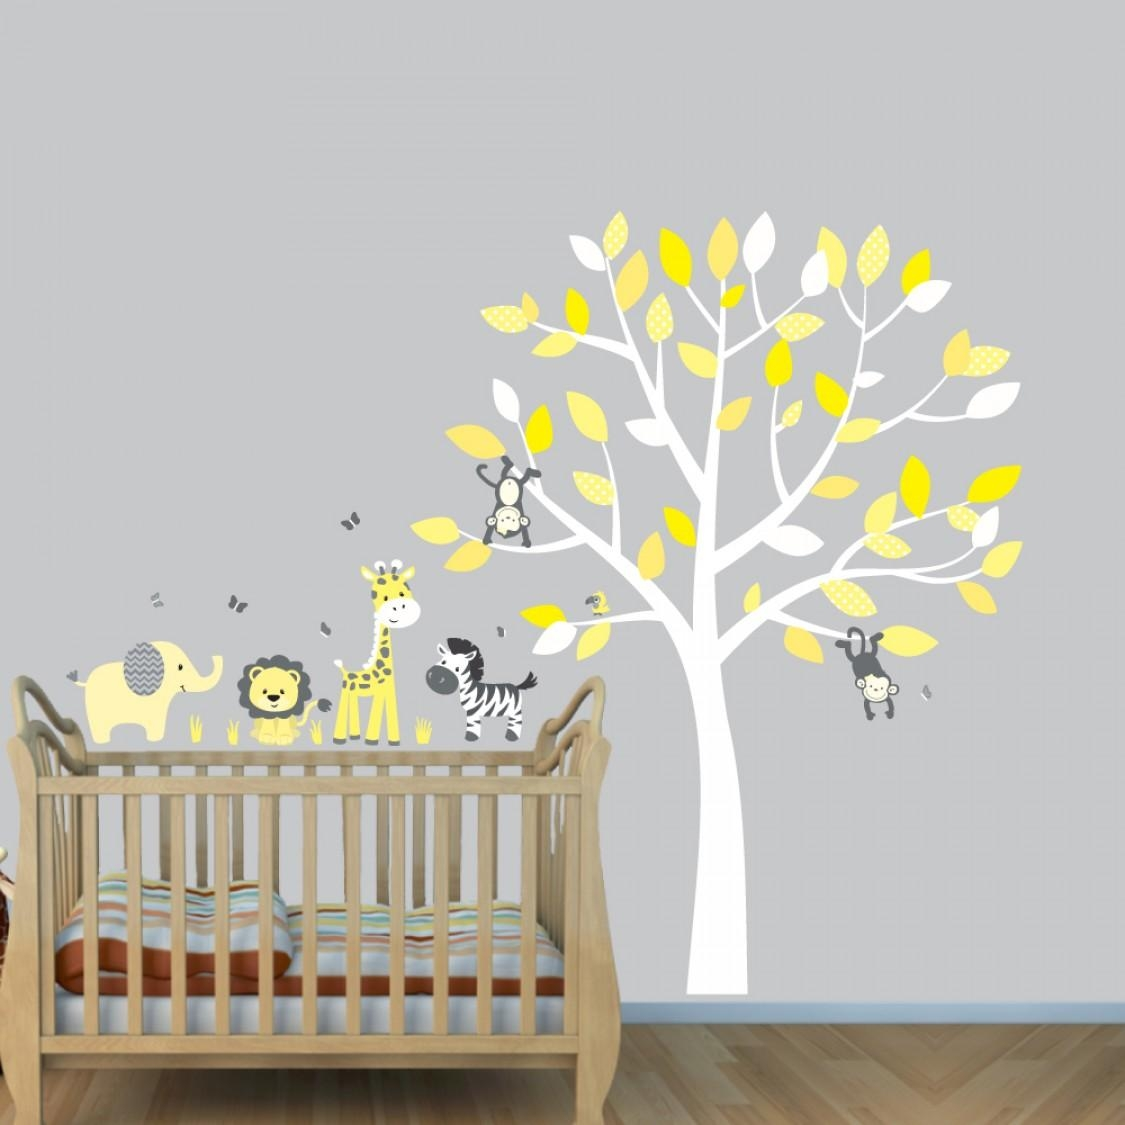 Grey Jungle Wall Stickers With Elephant Decals For Yellow Nursery throughout Gray And Yellow Wall Art